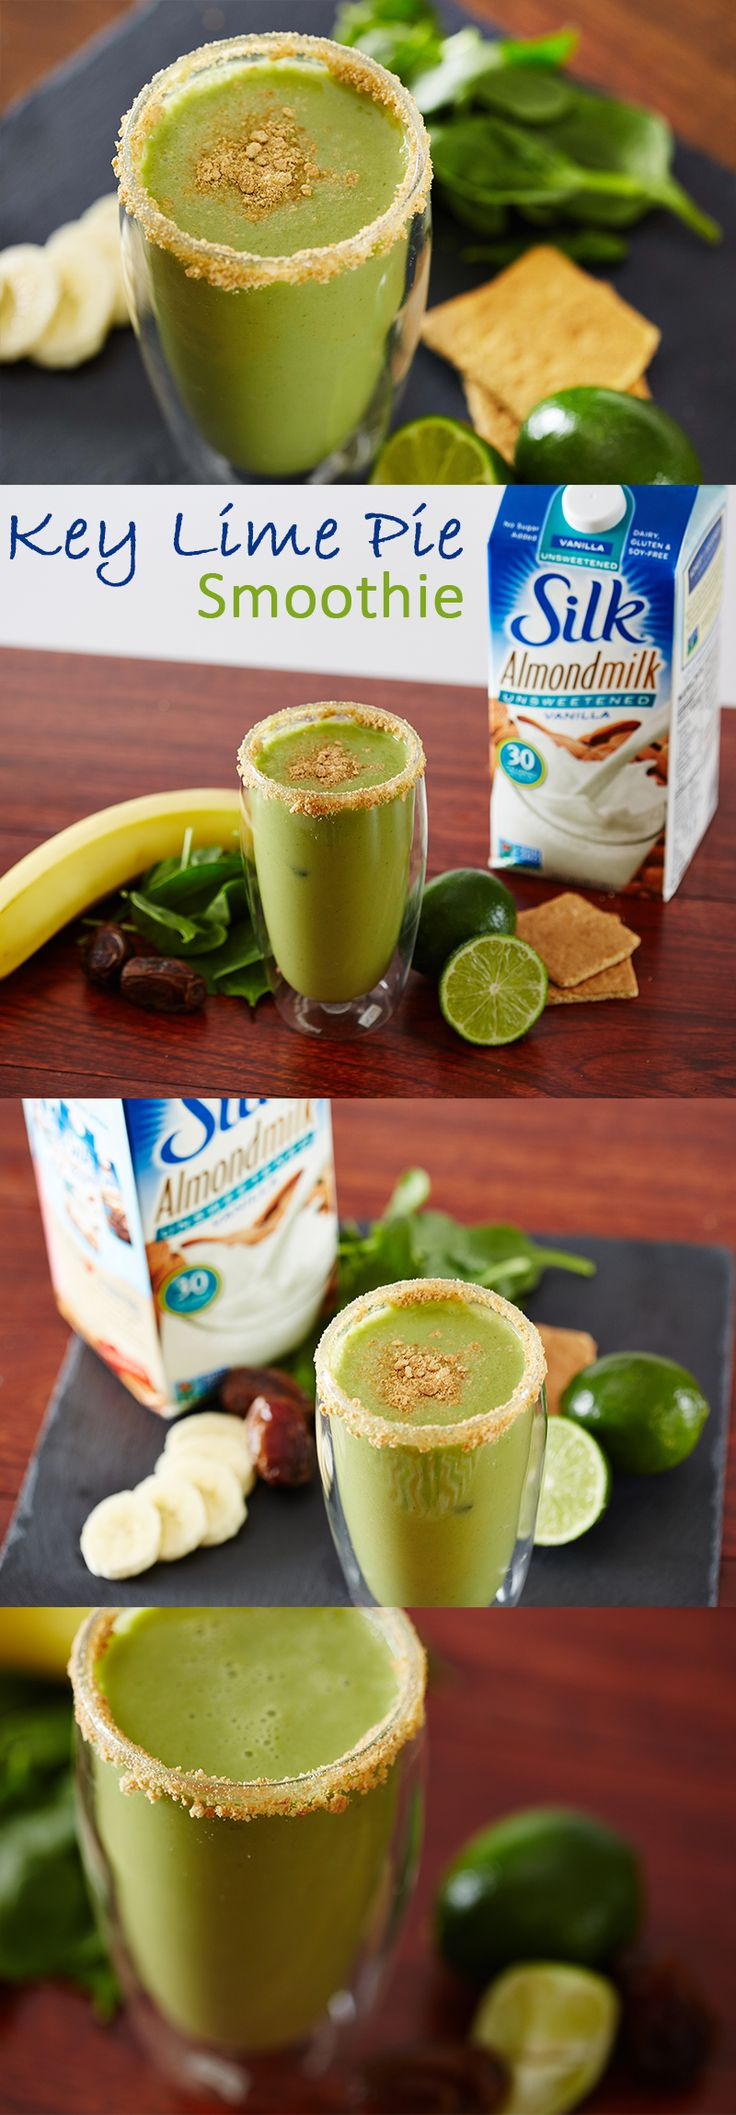 This Key Lime Pie Smoothie makes for a scrumptious dessert and is as delicious as it is good for you! Combine all ingredients, except the graham crackers, in a blender and process until smooth. Then pour into a glass and top with crushed graham crackers! 240 calories